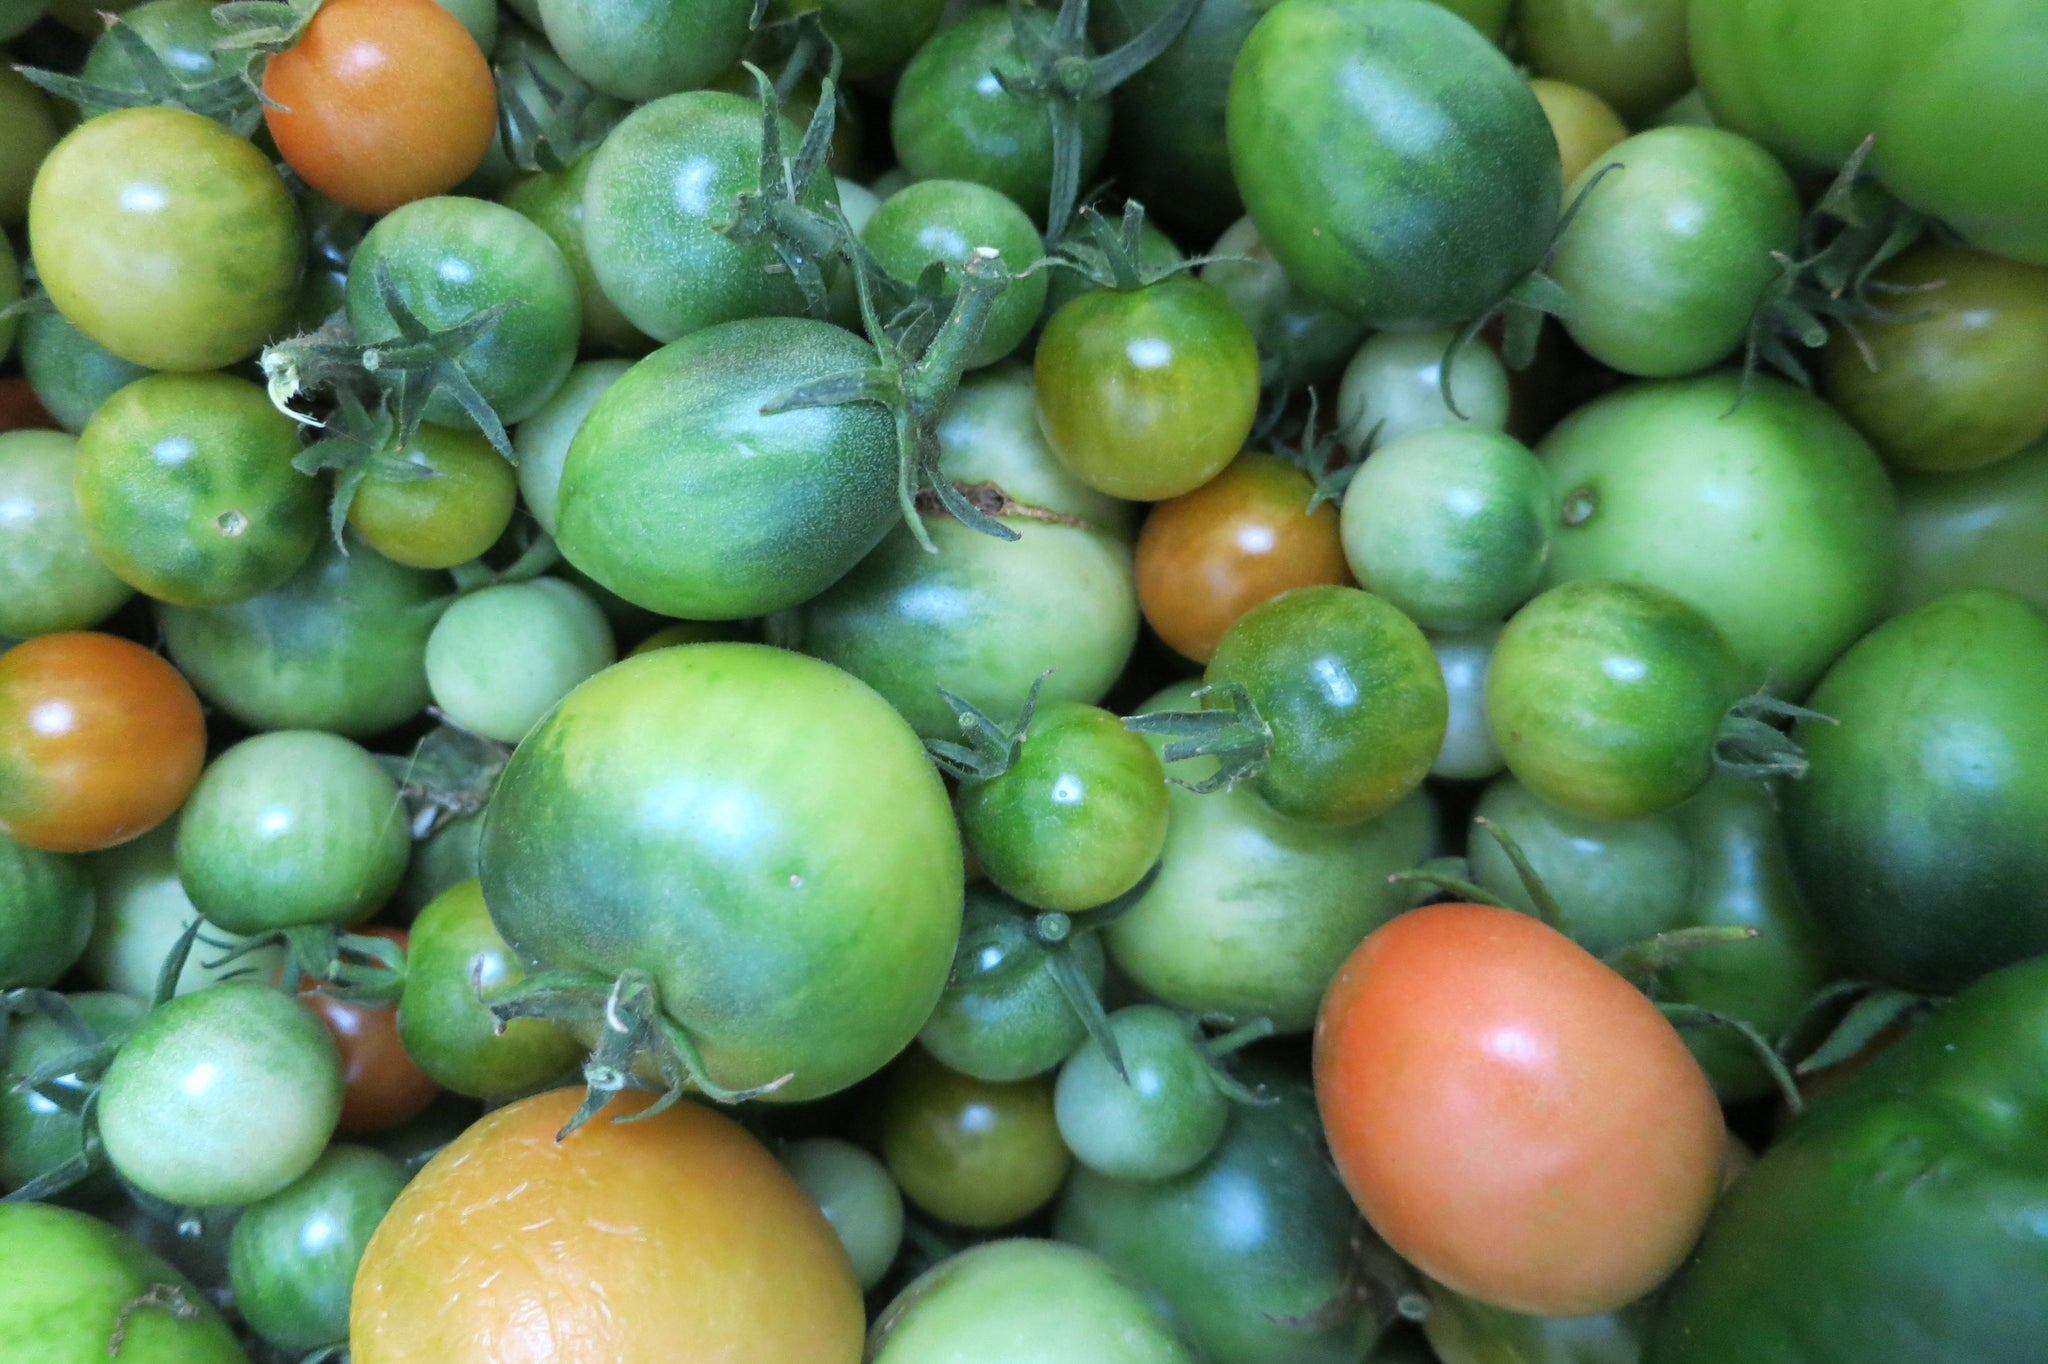 Grow Short Season Tomatoes - avoid a ton of green tomatoes in the fall!